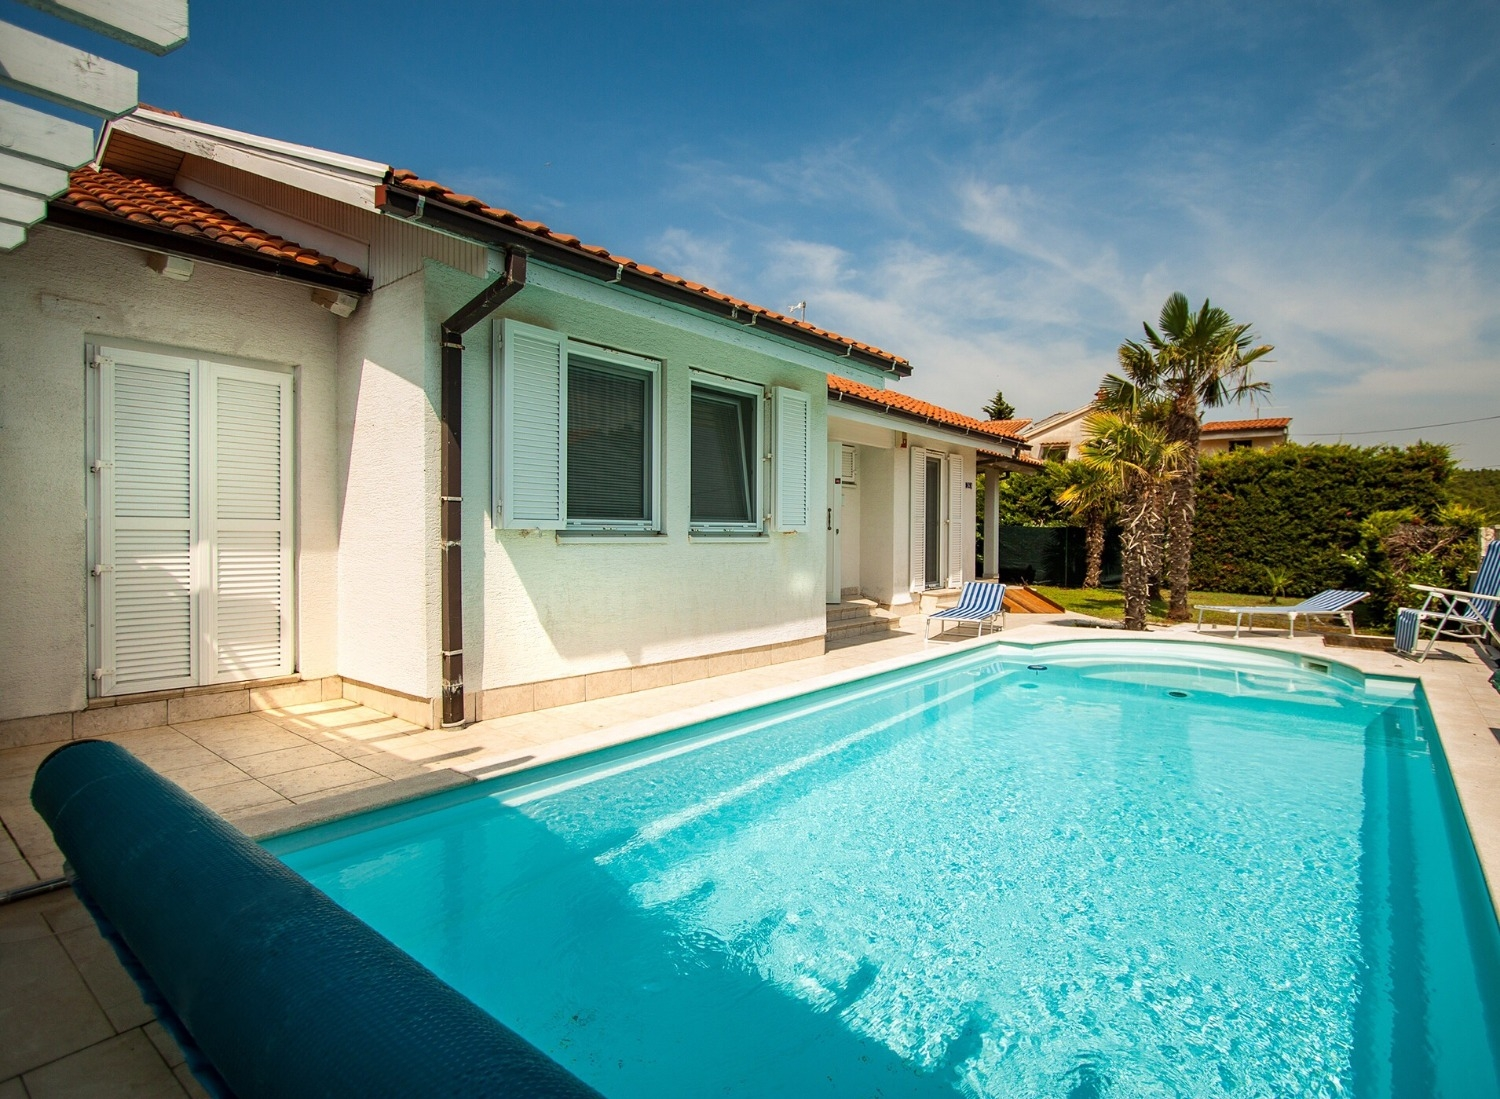 Holiday Homes, Medulin, Pula & south Istria - Holiday houses, villas  Kova